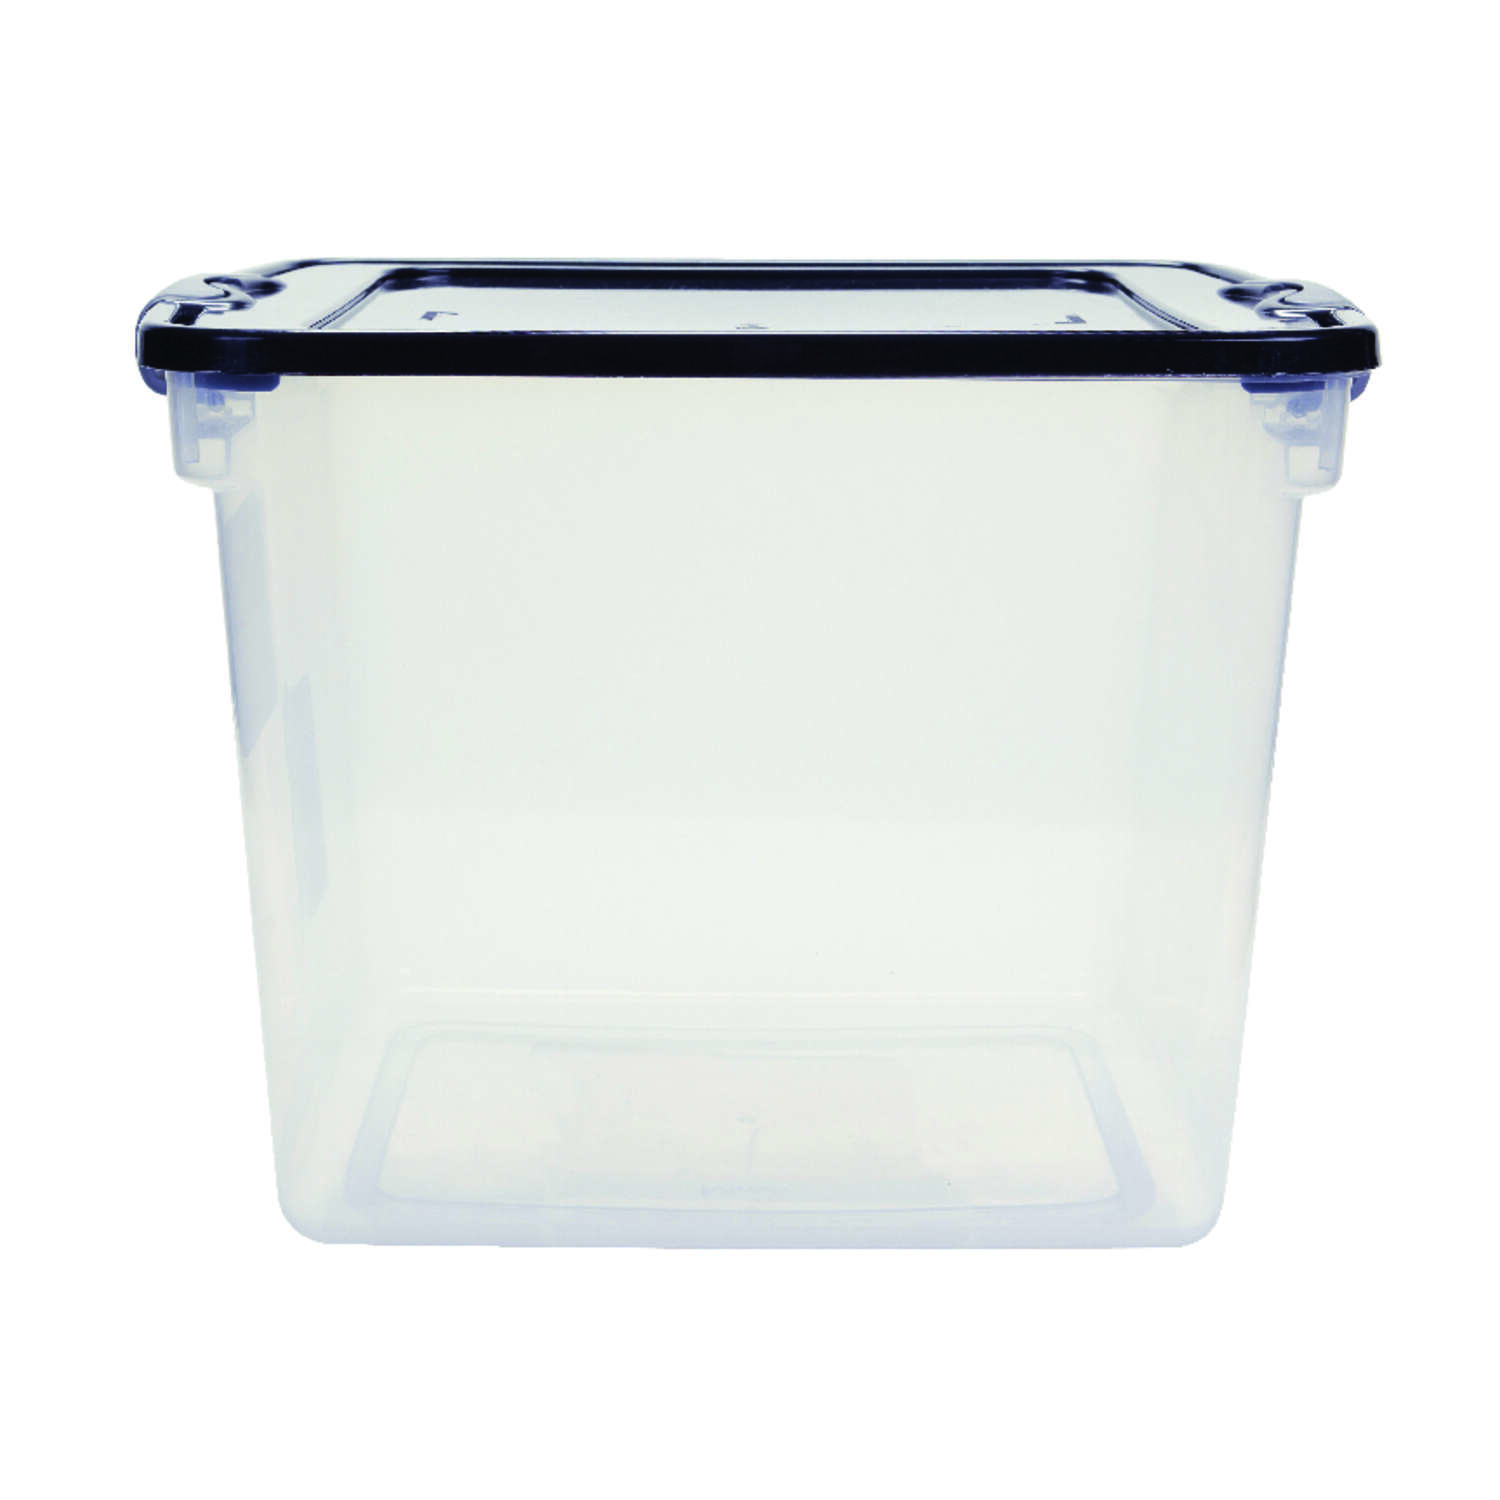 Homz  Latching  12-1/8 in. H x 13 in. W x 16-1/4 in. D Stackable Storage Box